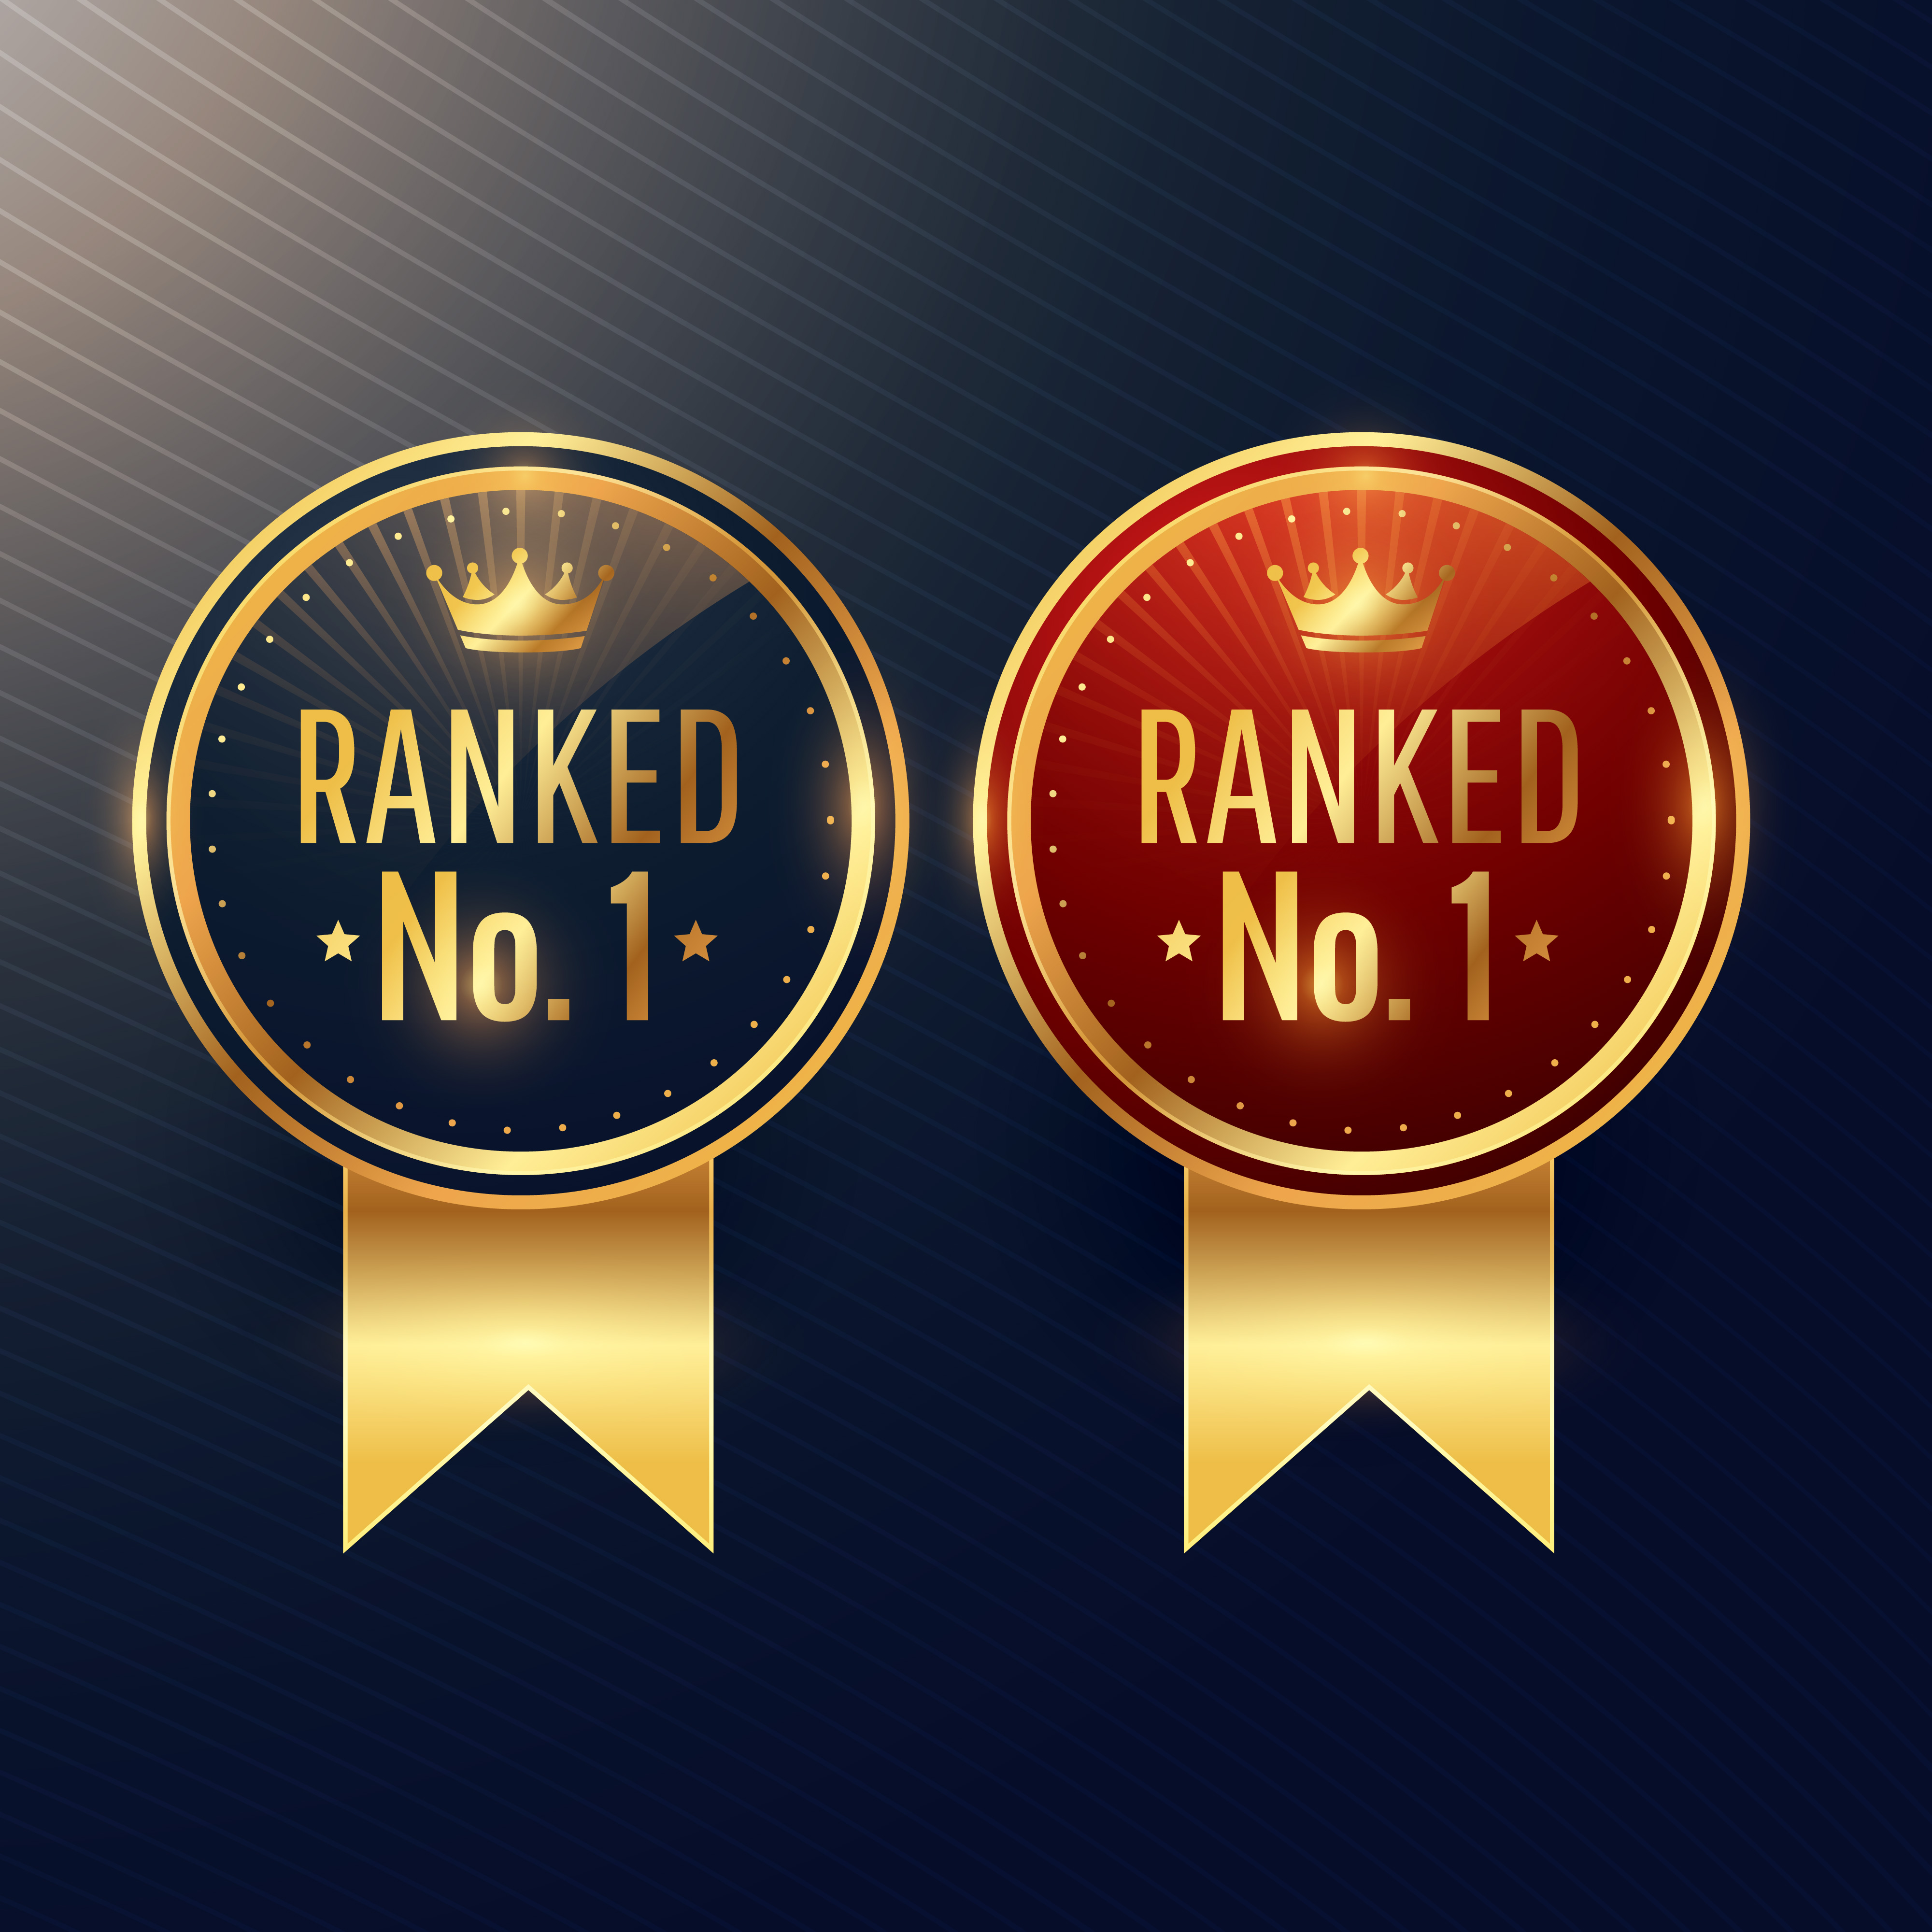 Promotion Retro Badges: Ranked No.1 Labels Set In Two Colors